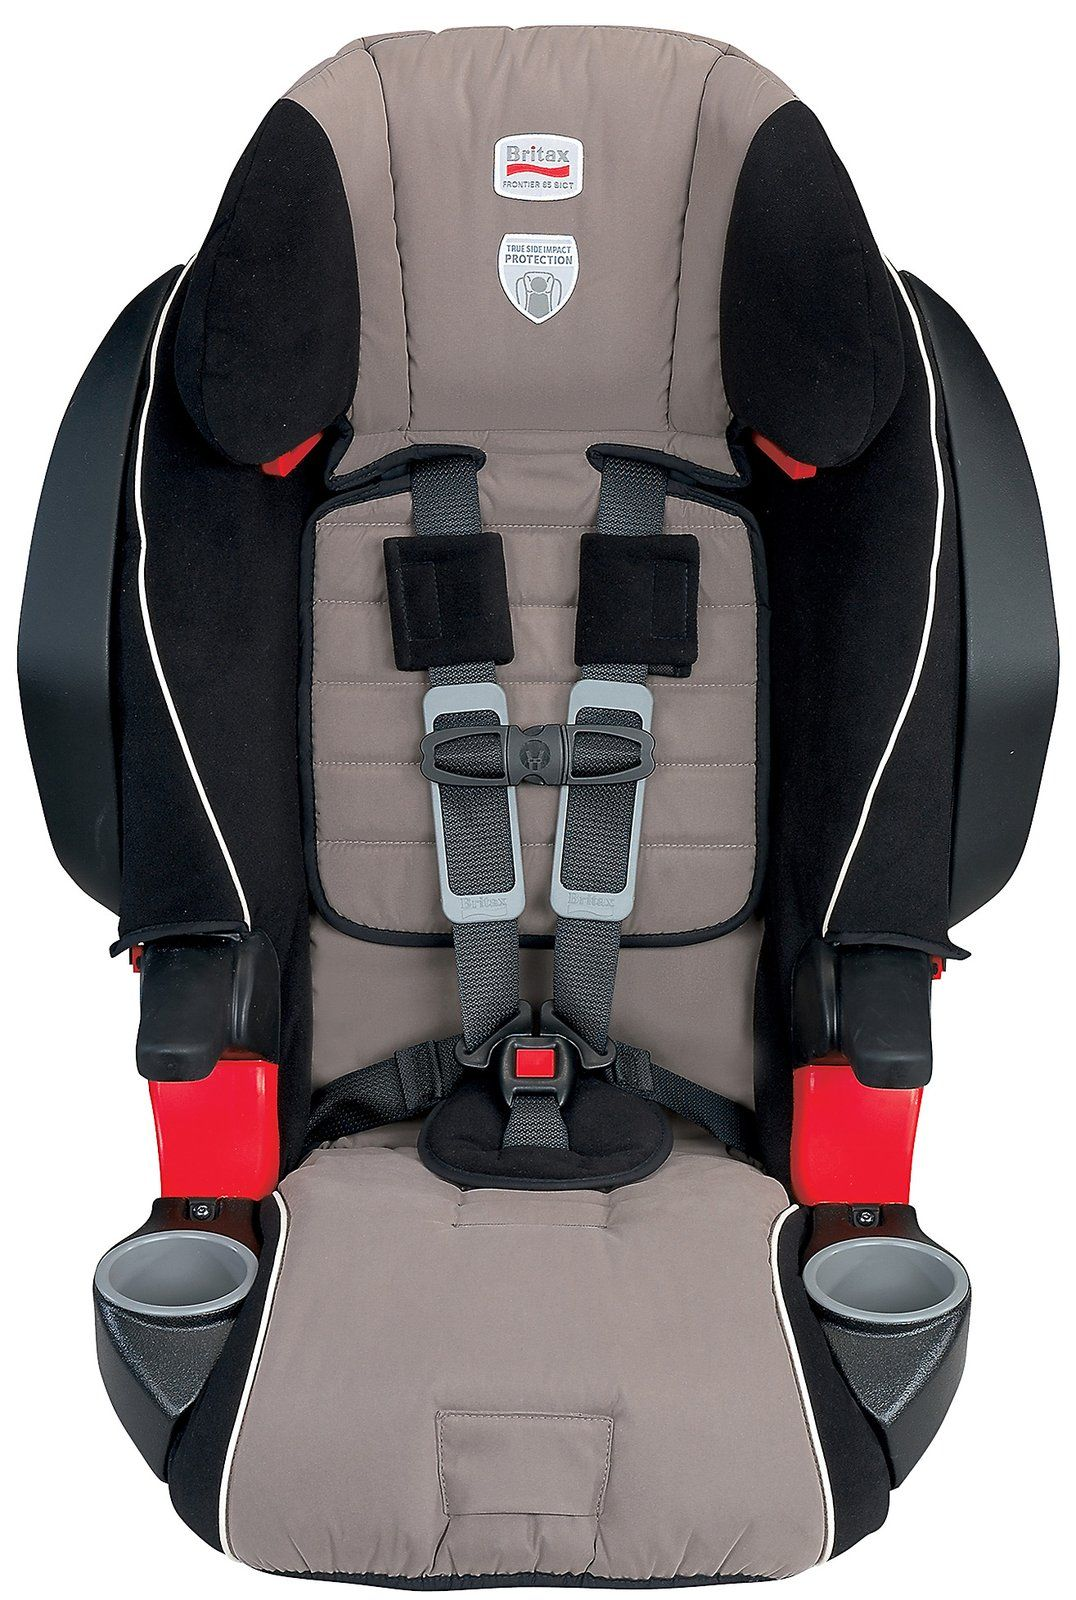 This Is My Current Carseat I Like It A Lot And Evie Seems To Too